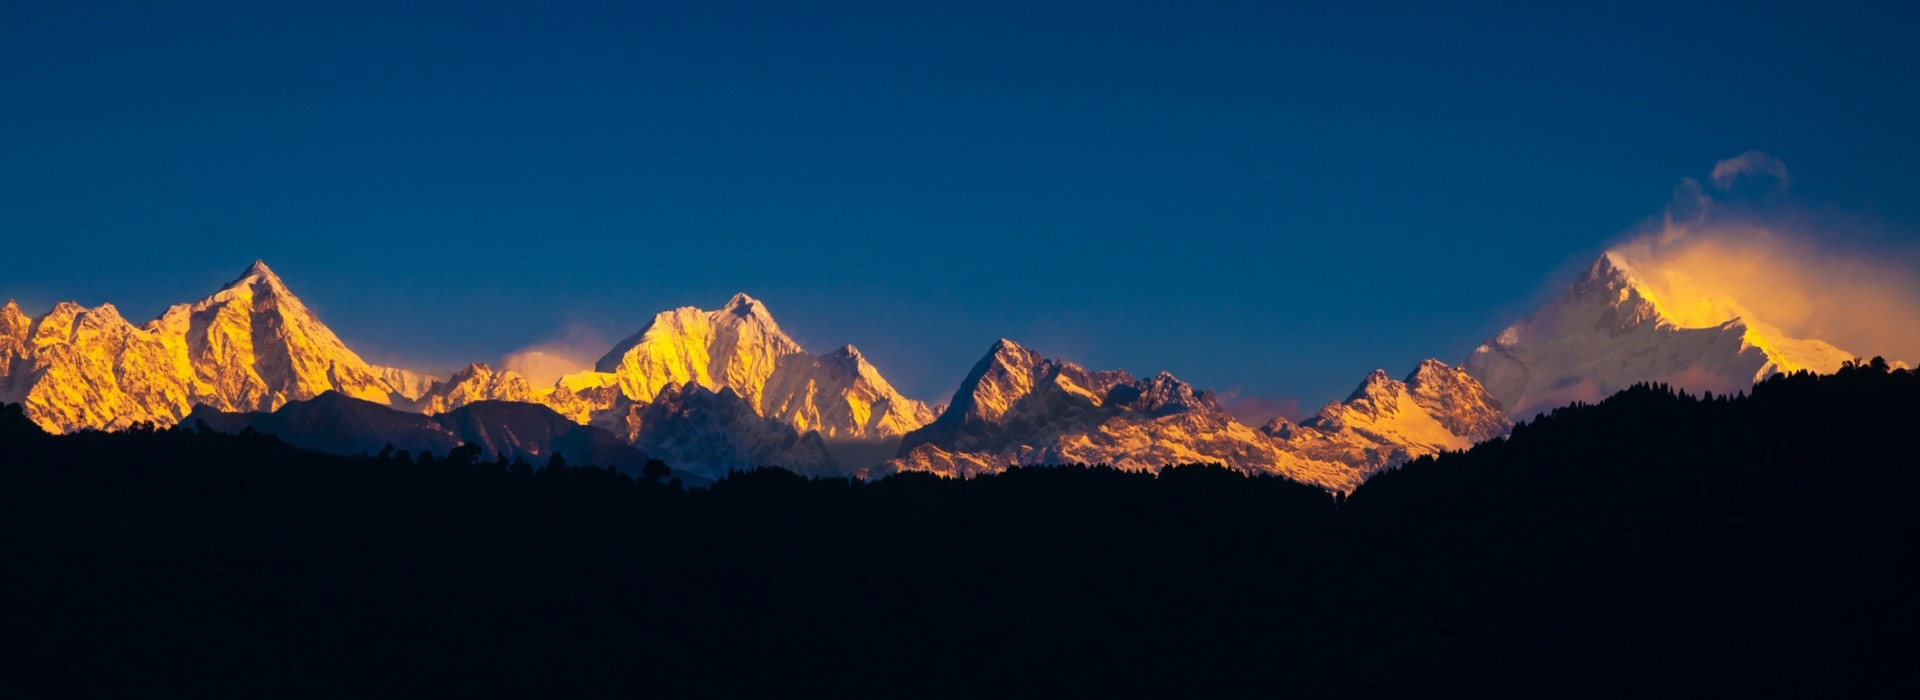 Evening view of the Kanchenjunga range taken from the Kanchenjunga Trek in Nepal